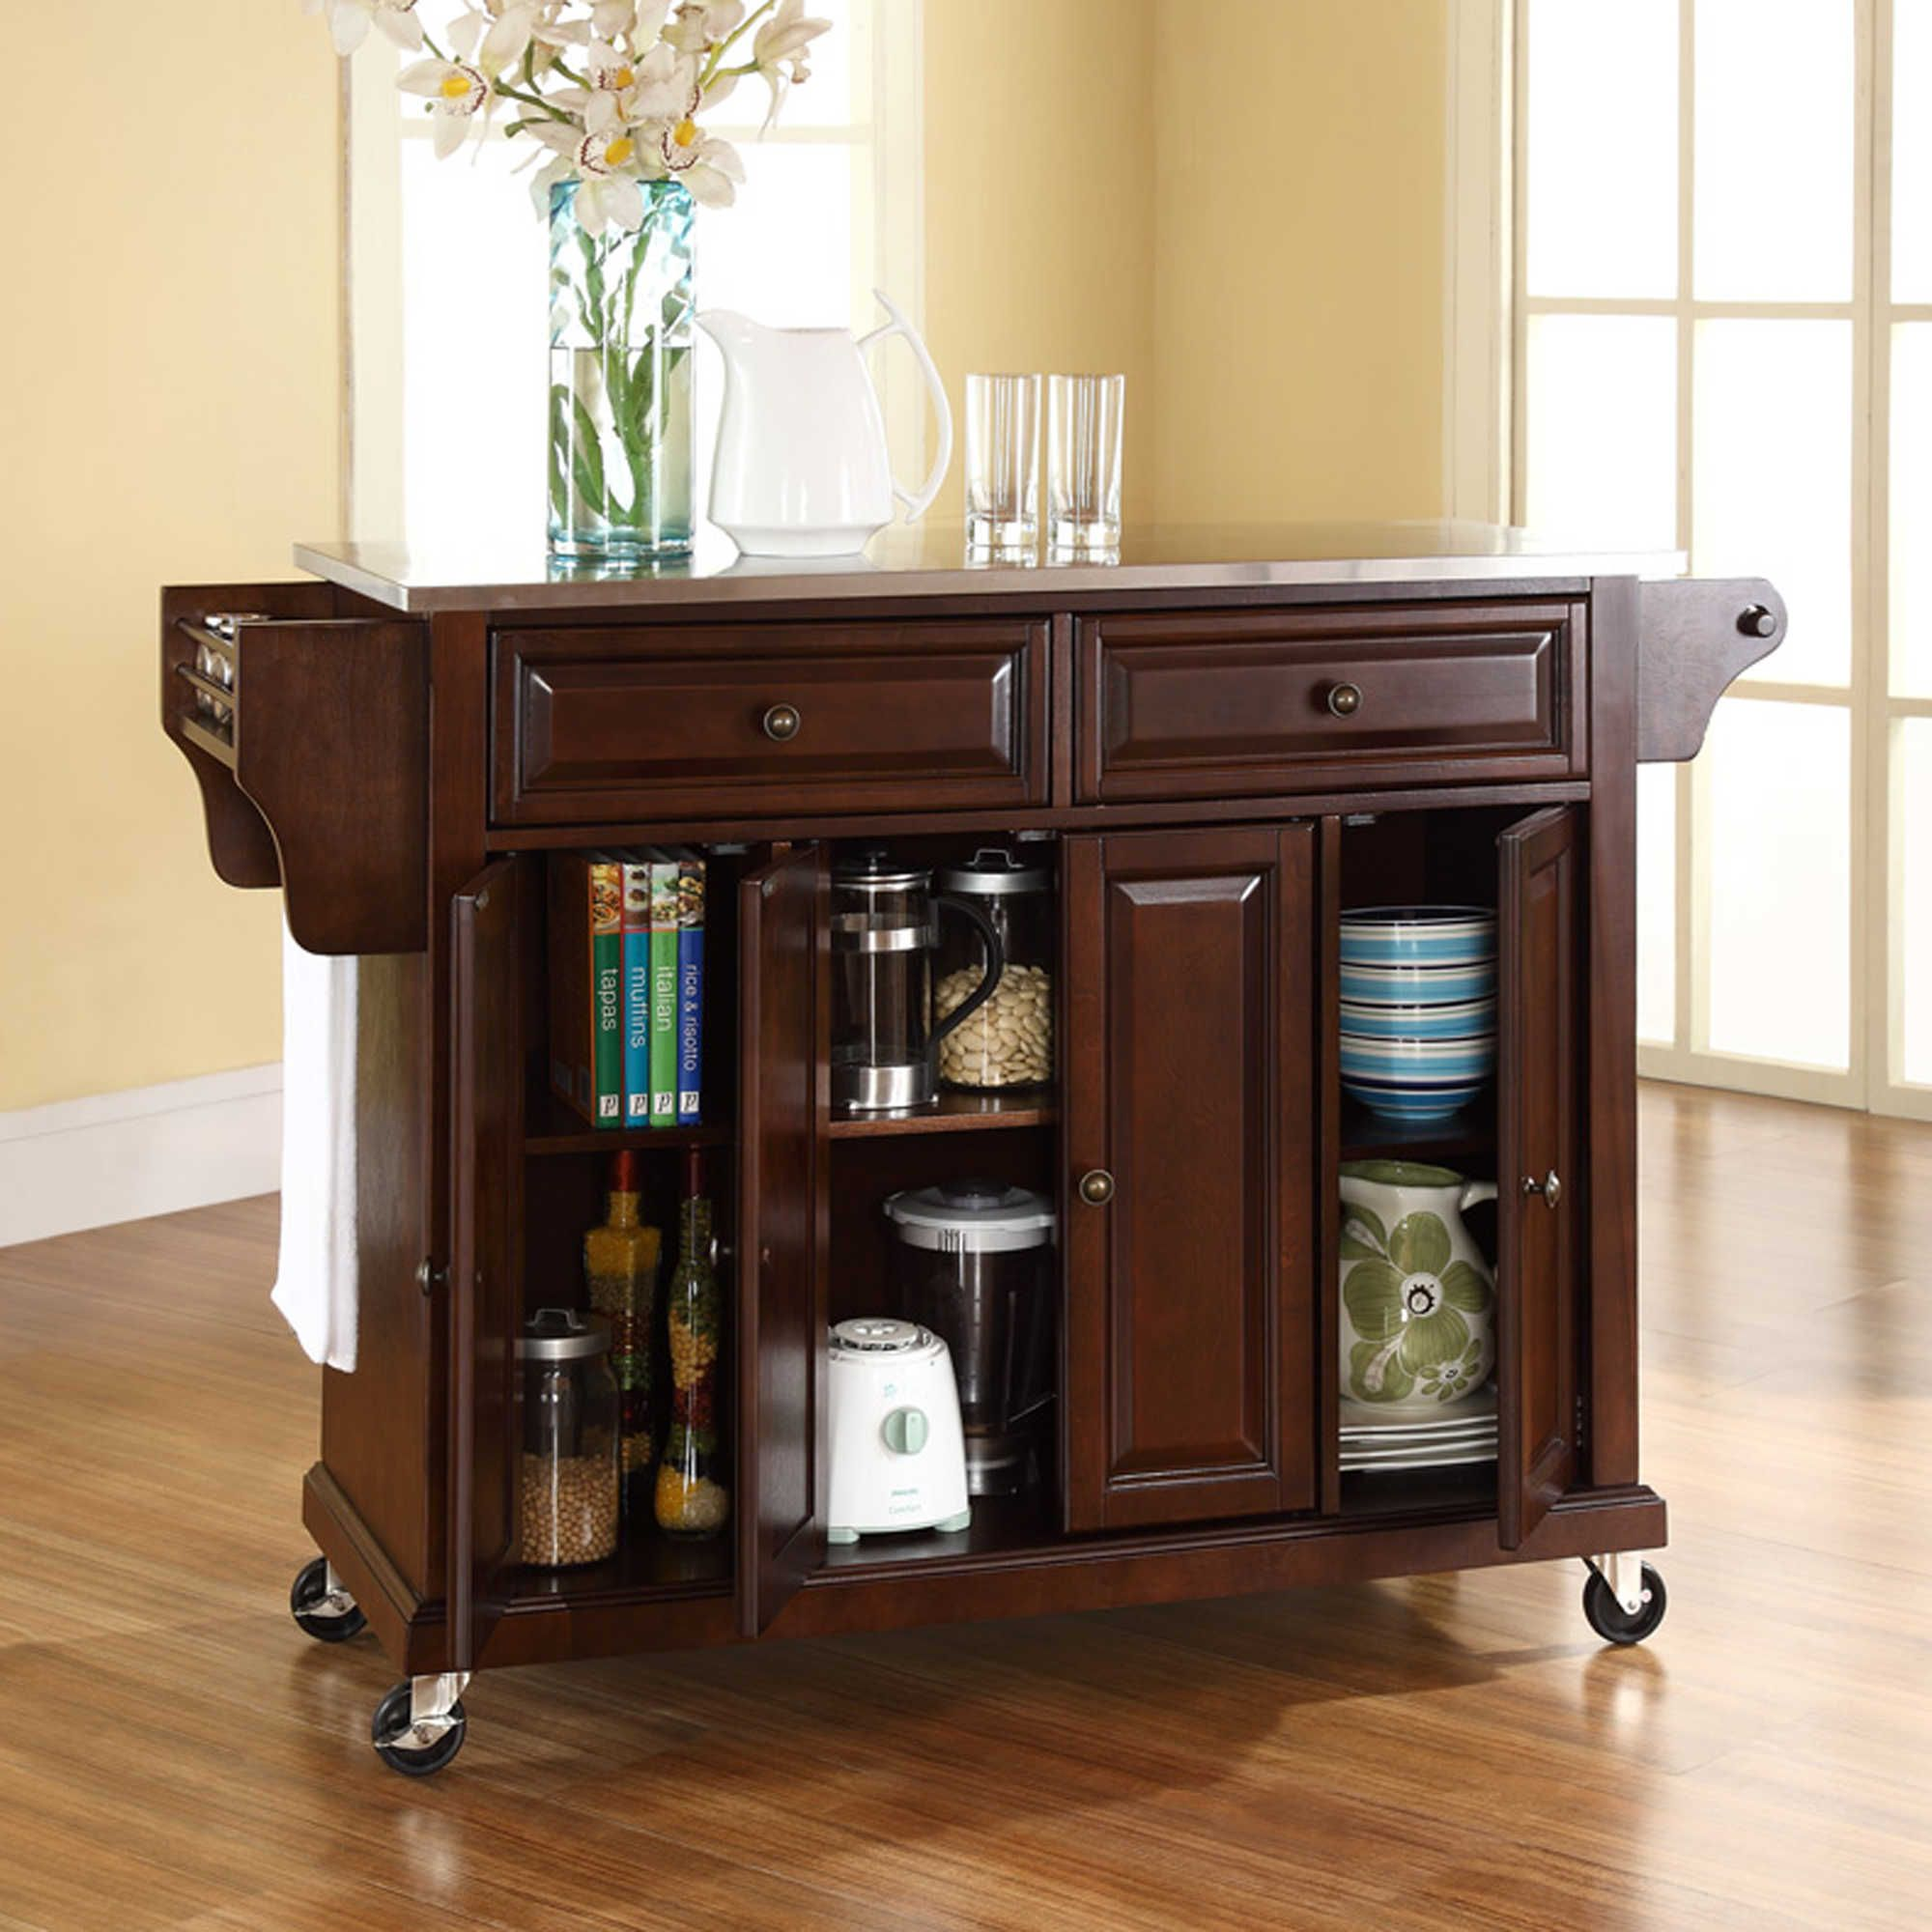 Crosley Rolling Kitchen Cart/Island with Stainless Steel Top ...